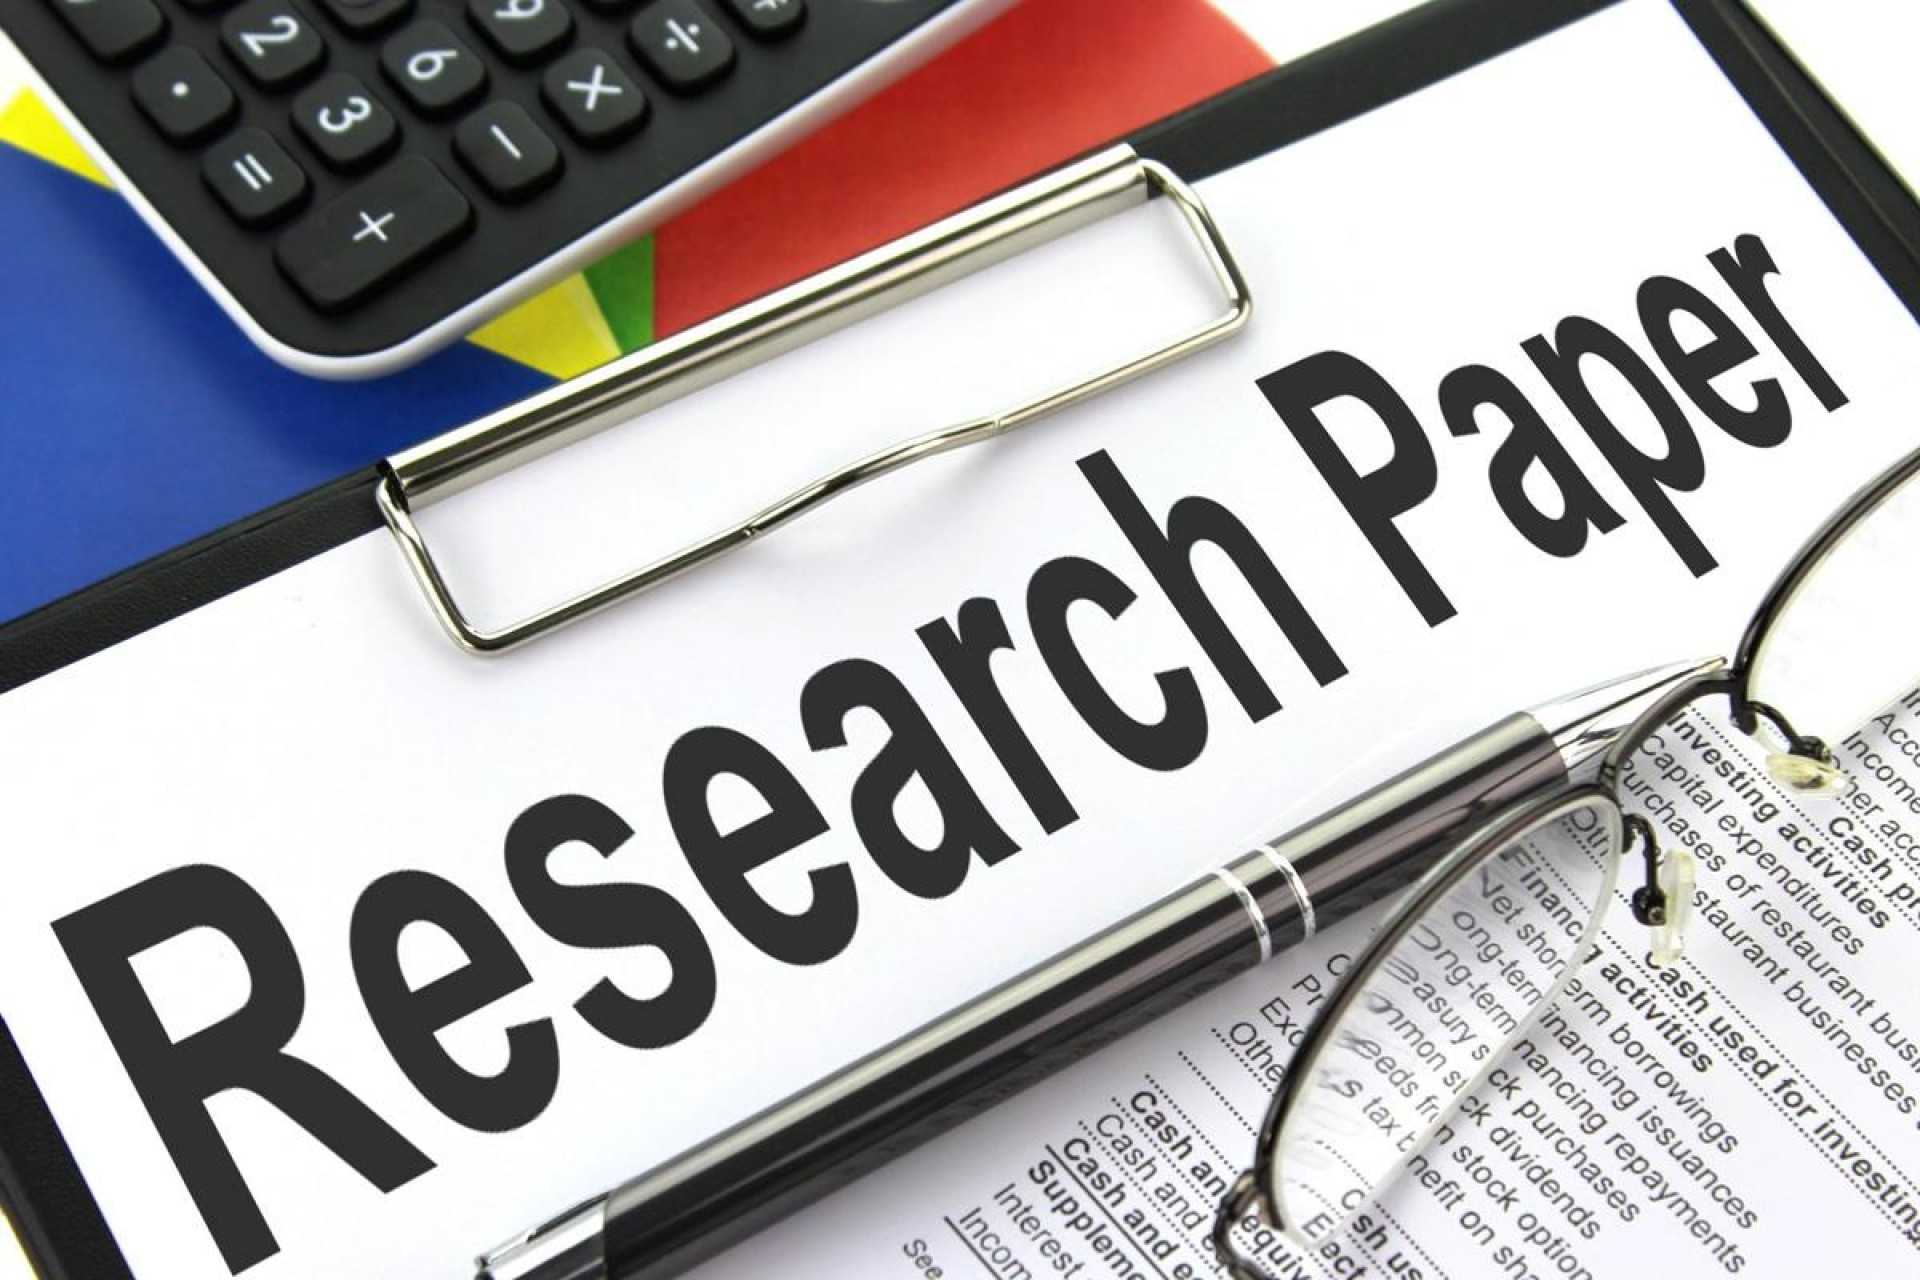 020 Steps Writing Research Paper Best 10 To A Page Pdf 1920